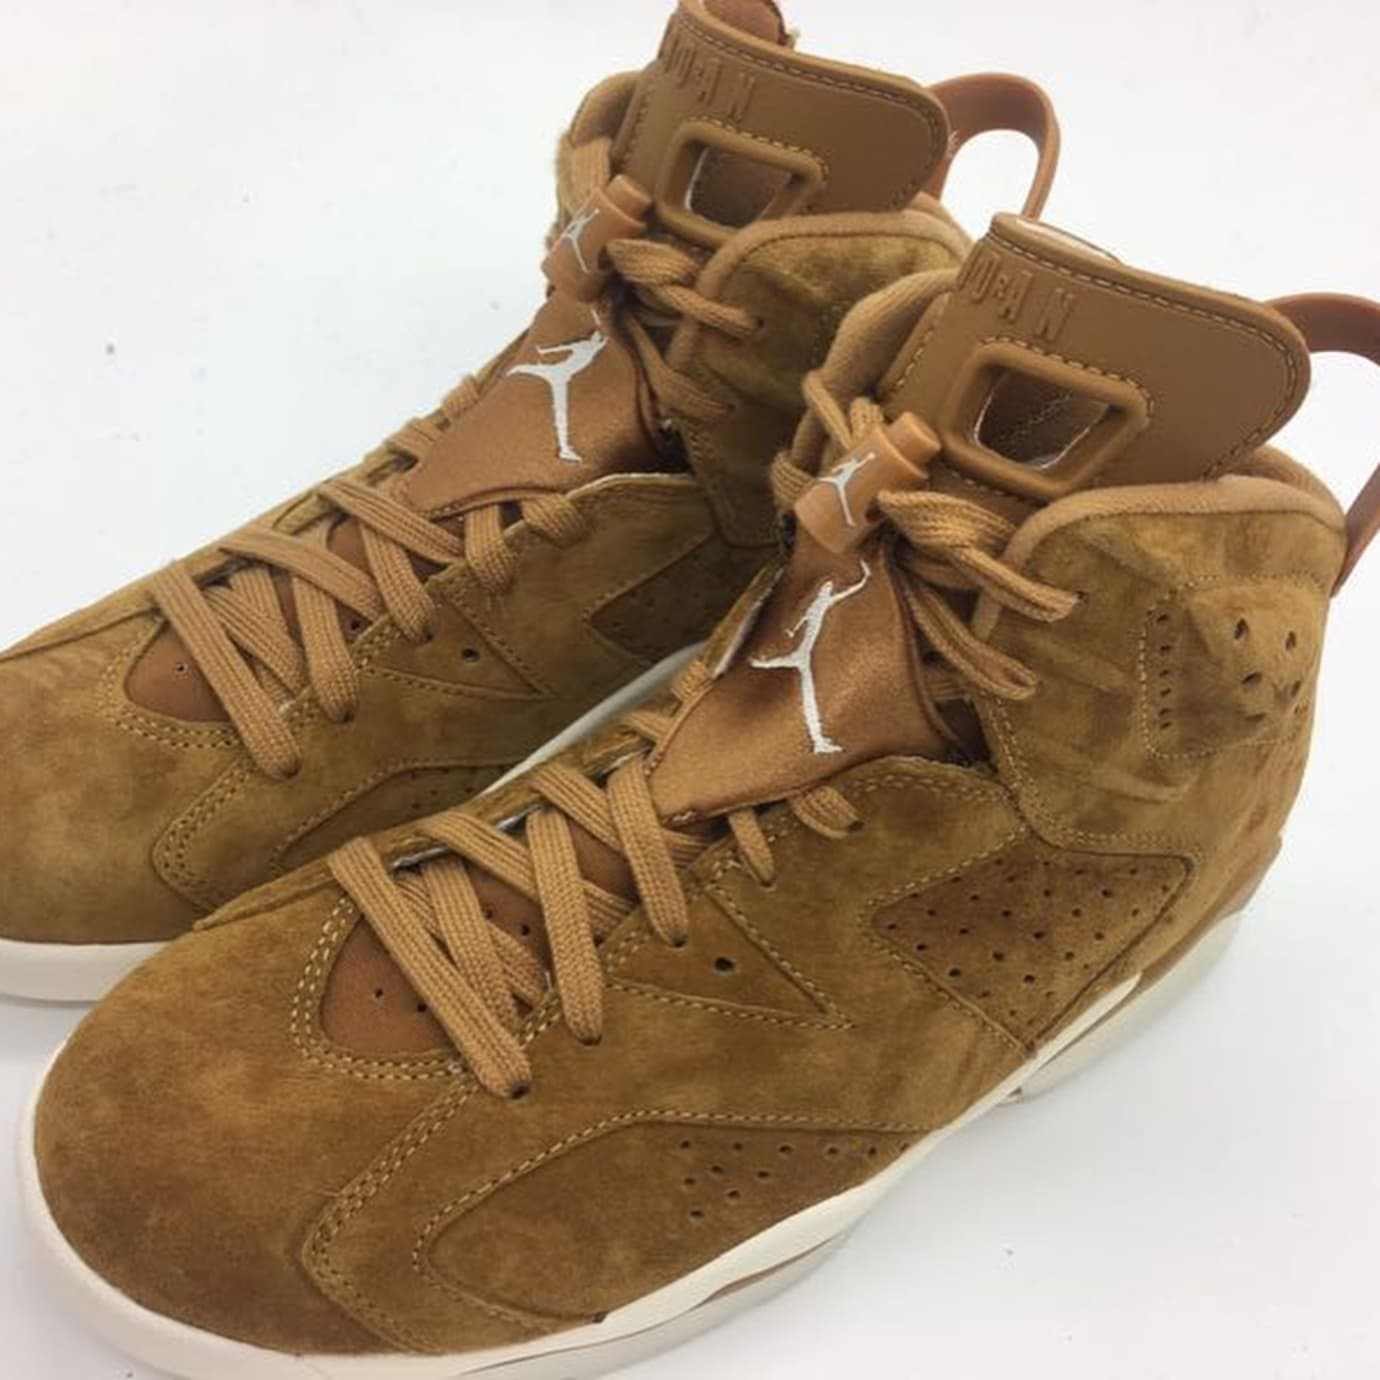 7070f262ae3217 Air Jordan 6 Golden Harvest Wheat Release Date 384664-705